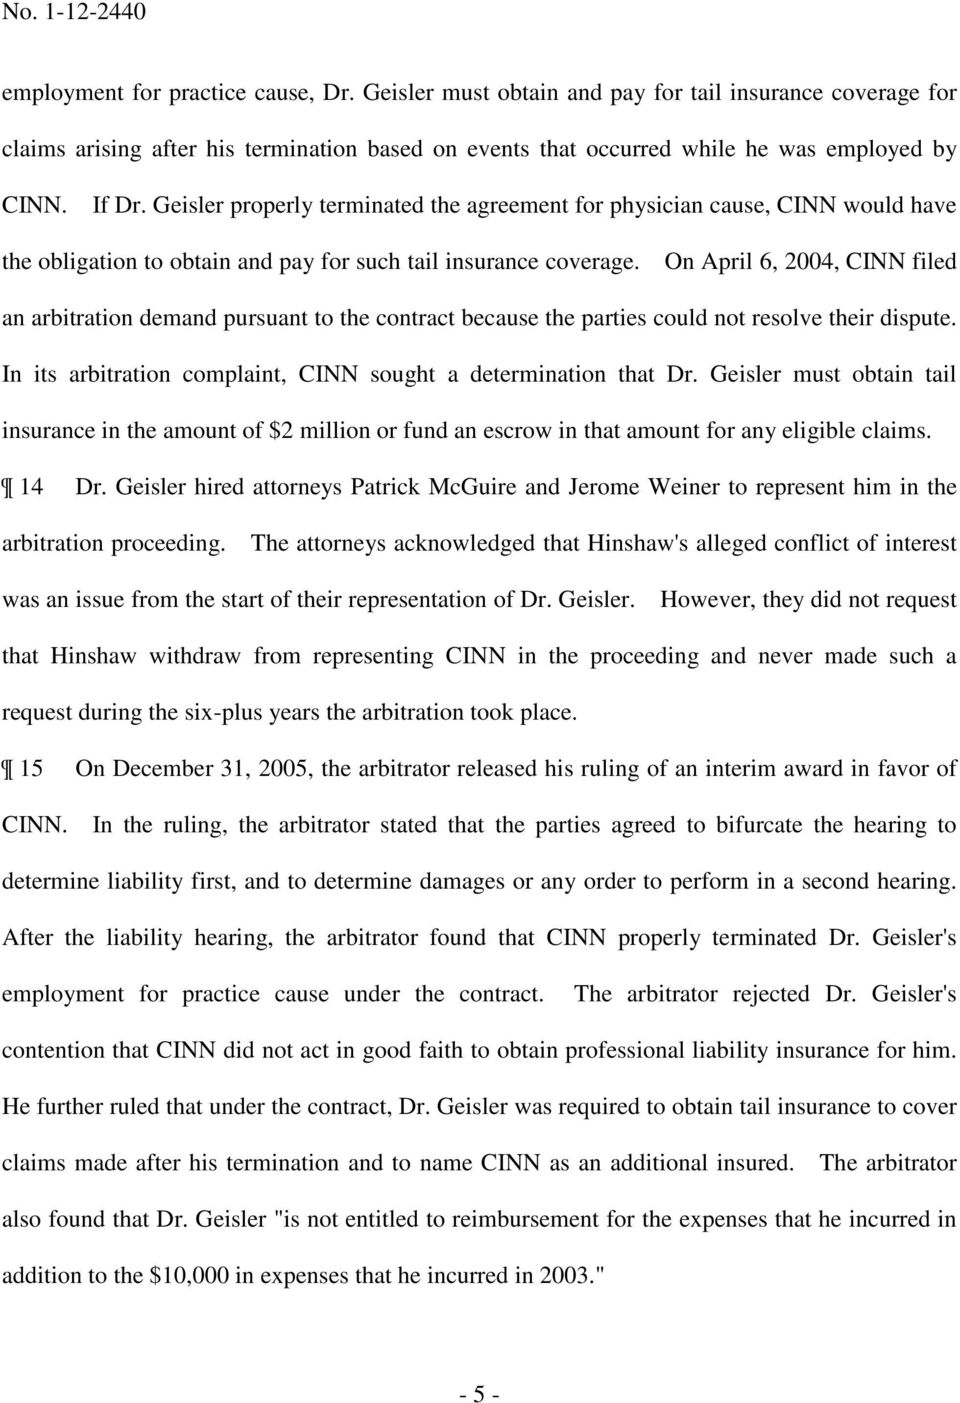 On April 6, 2004, CINN filed an arbitration demand pursuant to the contract because the parties could not resolve their dispute. In its arbitration complaint, CINN sought a determination that Dr.